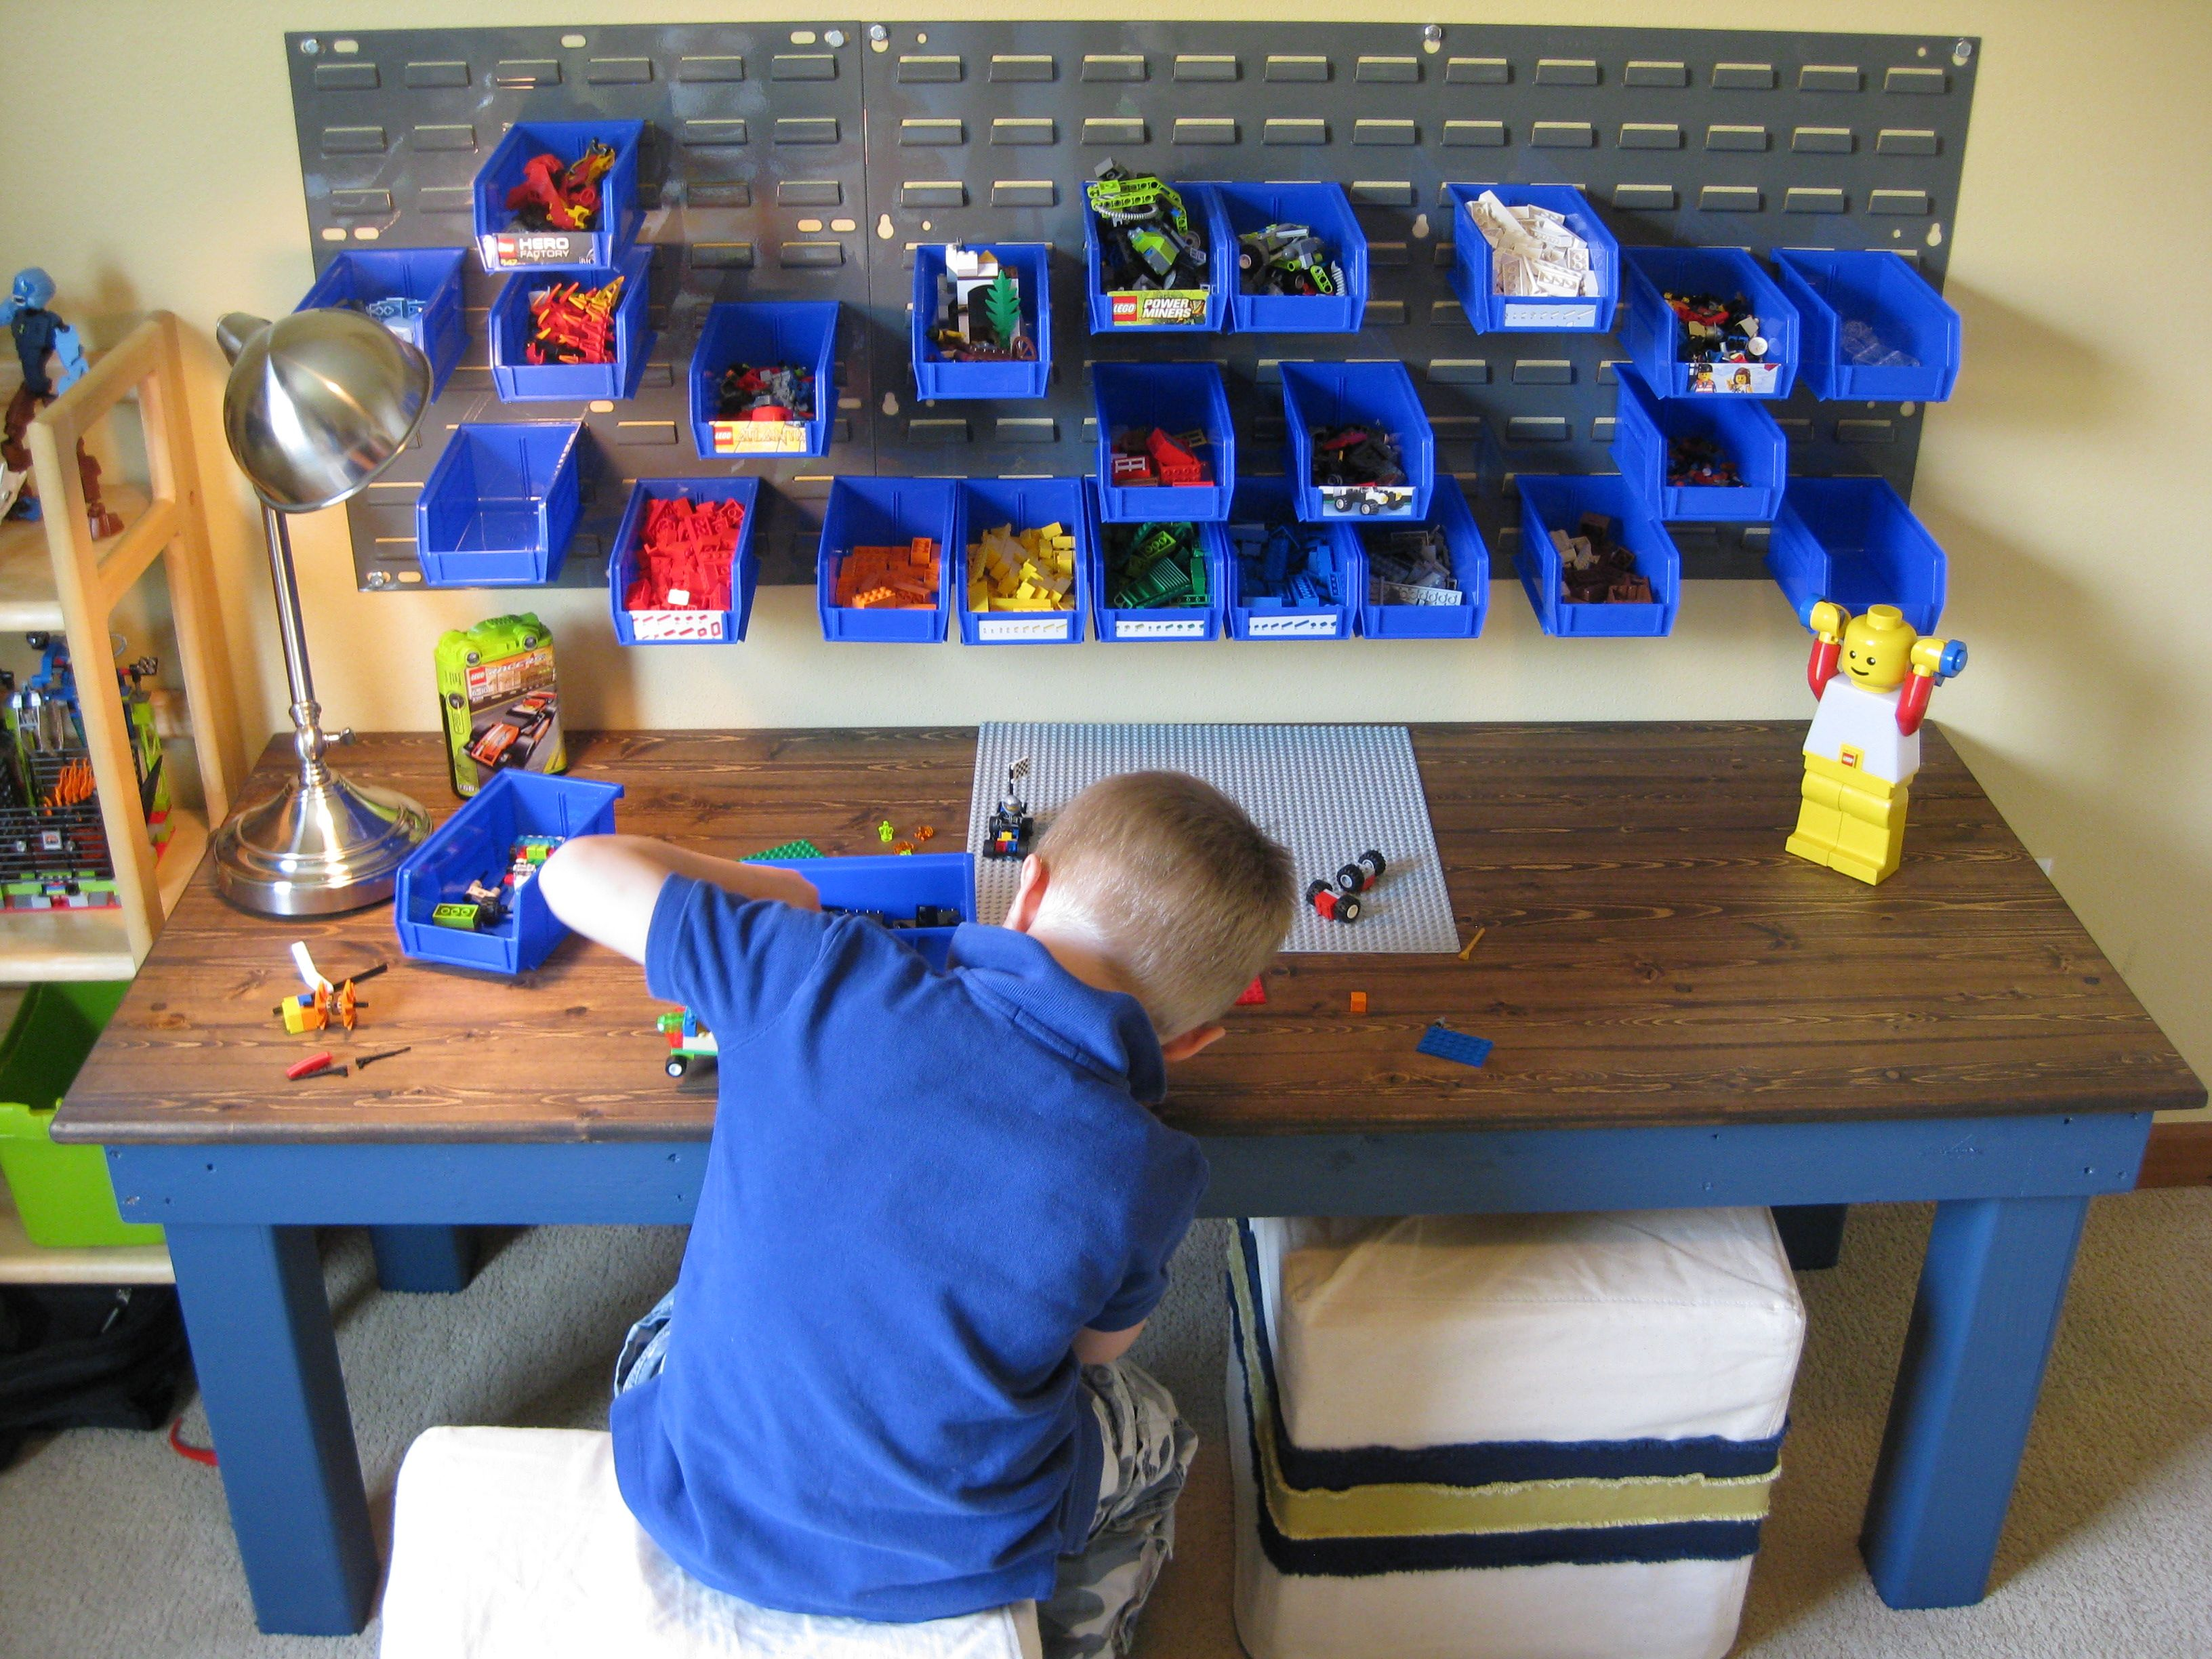 Building Toys Teens : Love this idea to organize legos could be a